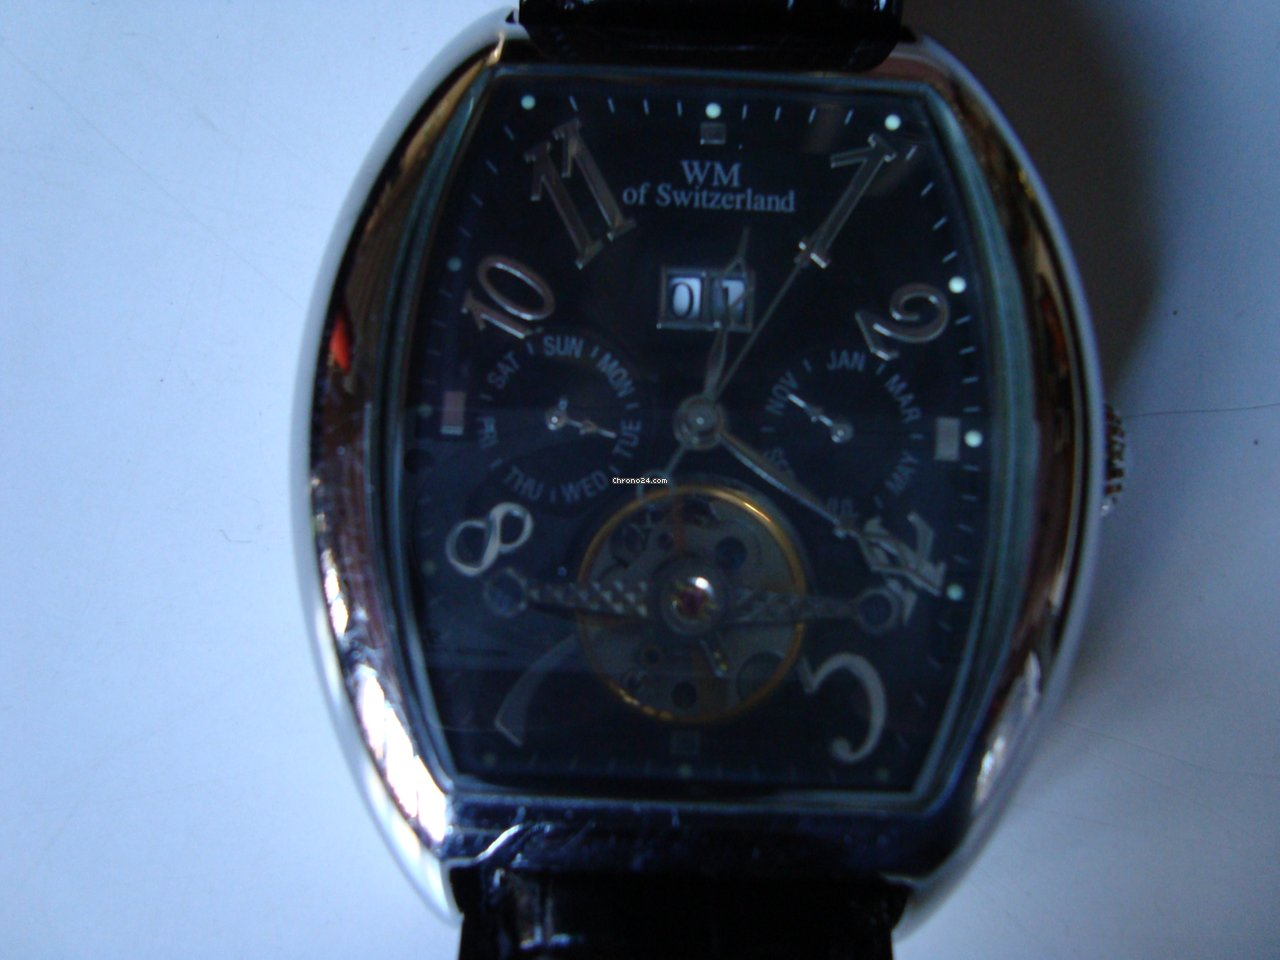 c70c4f7e1bd WM OF SWITZERLAND Tonneau TS Style for  298 for sale from a Trusted Seller  on Chrono24